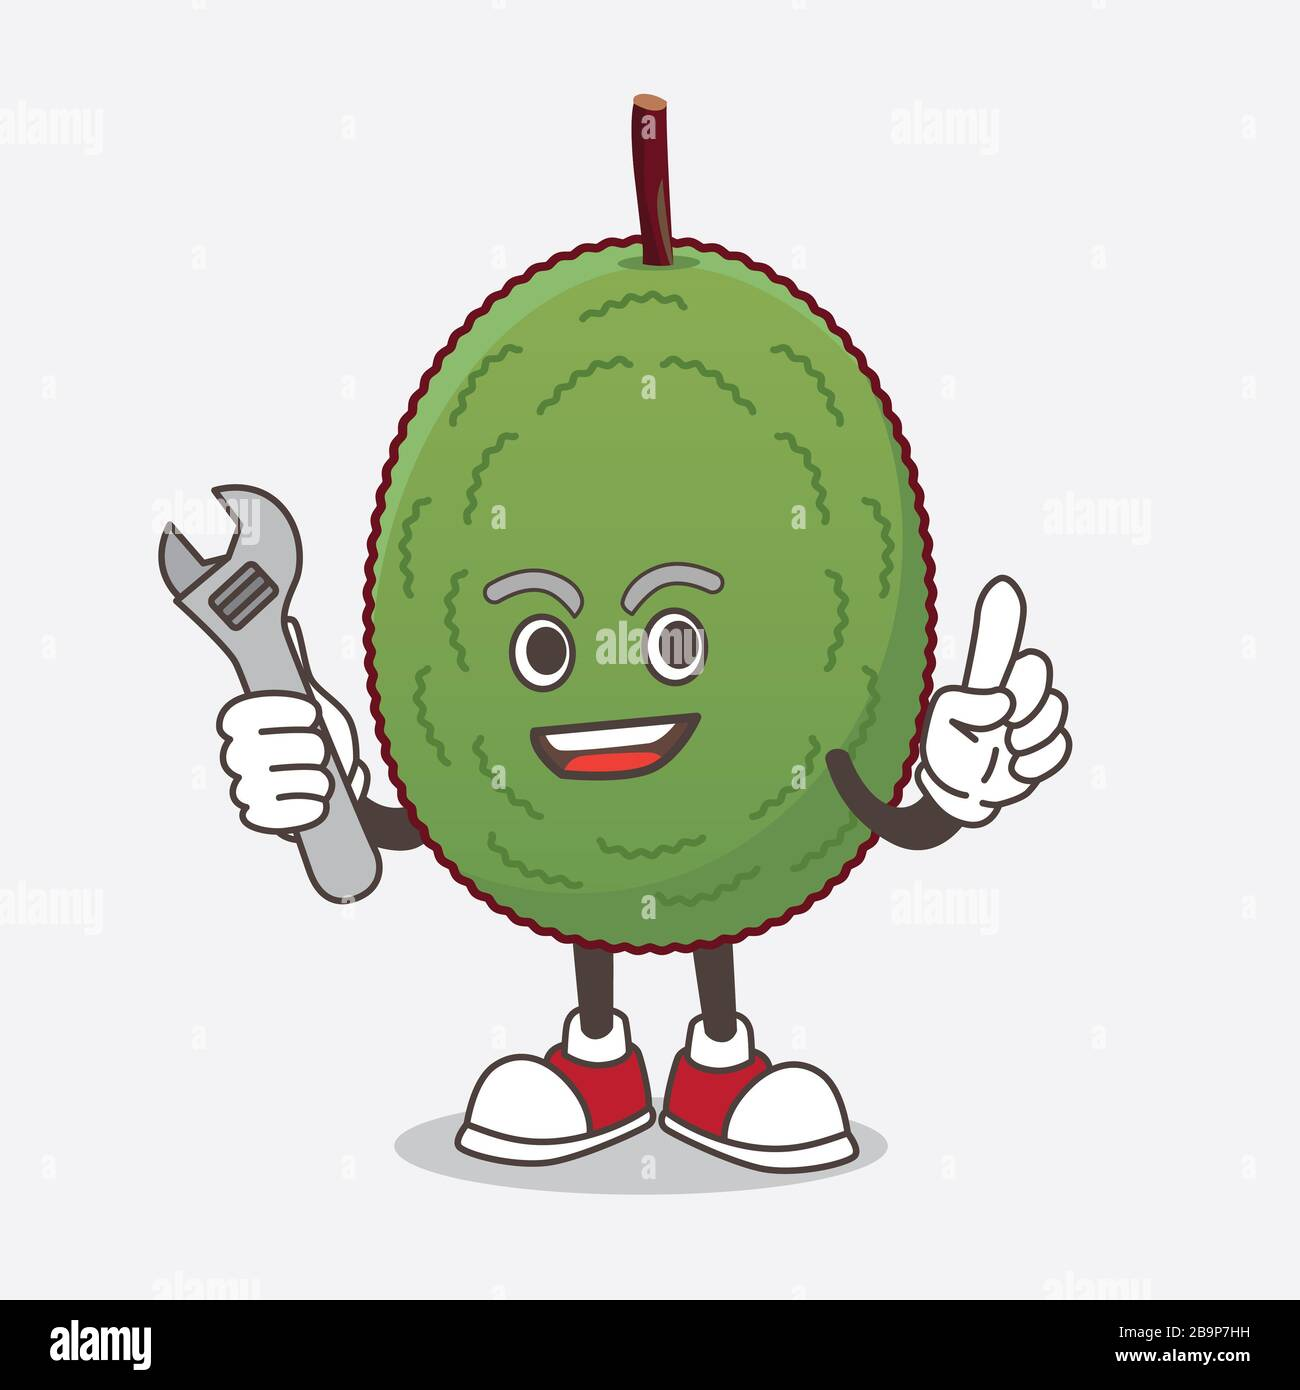 A Picture Of Jackfruit Cartoon Mascot Character As Happy Mechanic Stock Photo Alamy Find images of tree cartoon. alamy